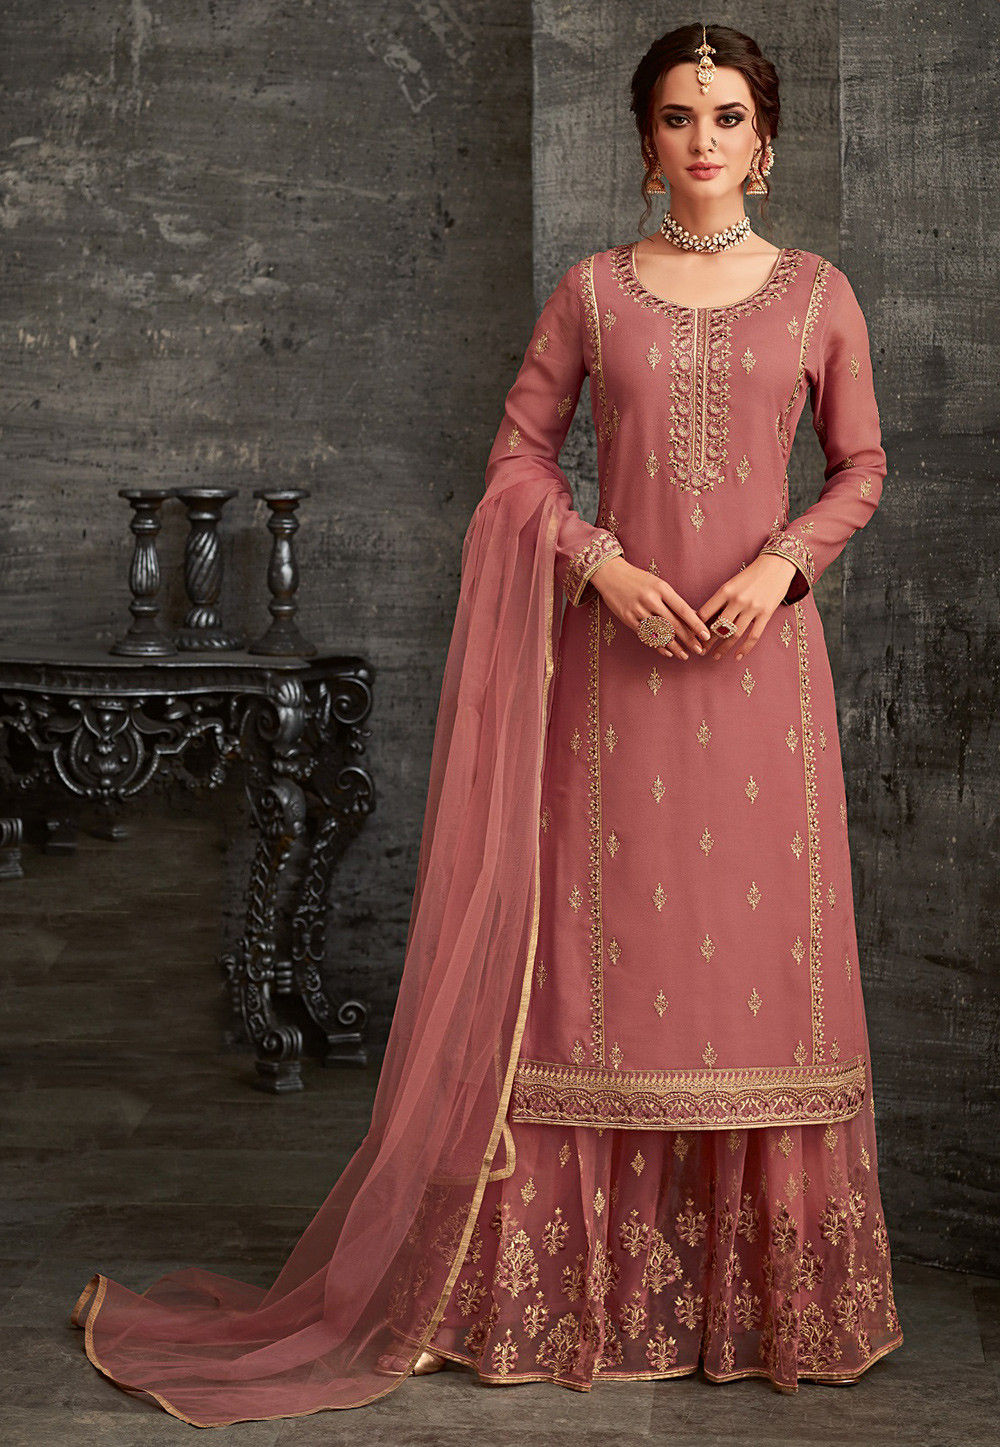 d498239f50 ... Embroidered Georgette Pakistani Suit in Dusty Pink. Zoom